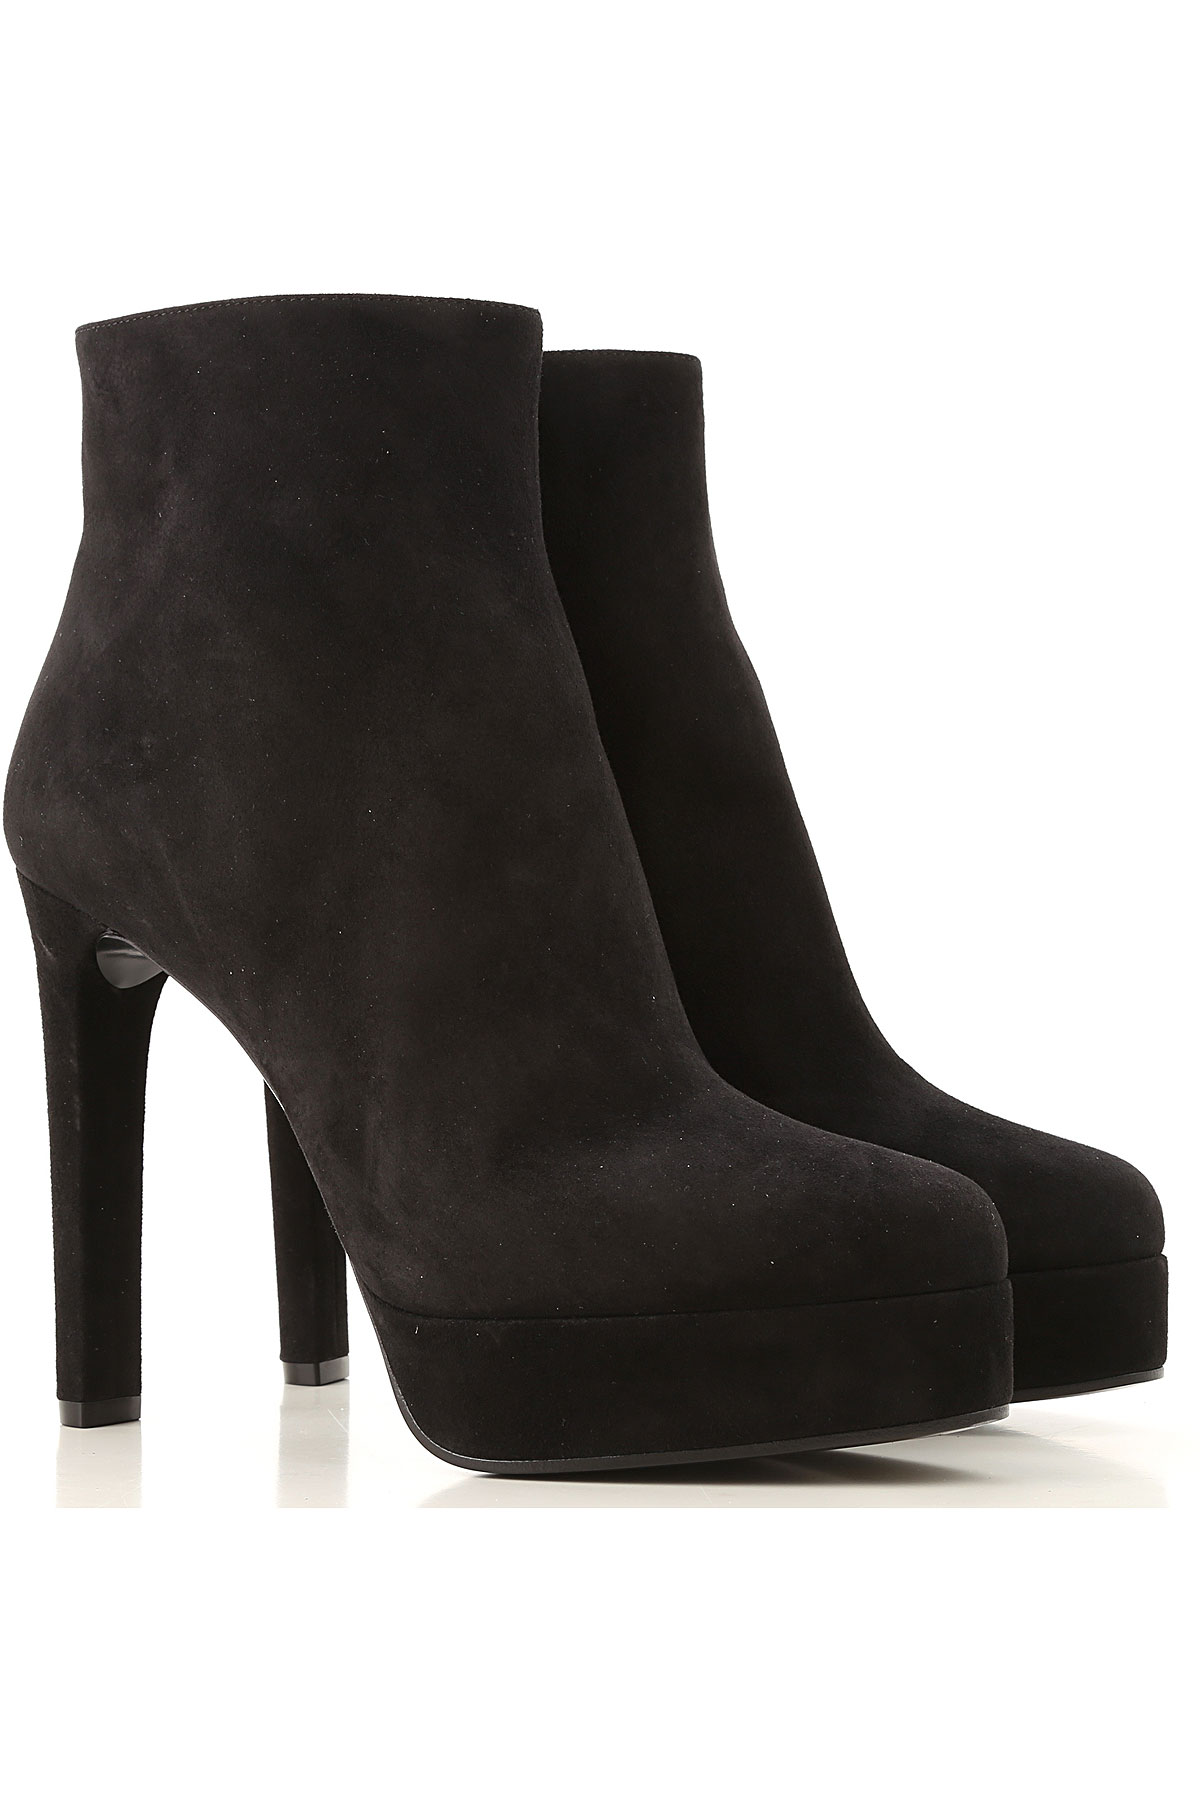 Casadei Boots for Women, Booties On Sale, Black, Suede leather, 2019, 10 6 6.5 7 8 8.5